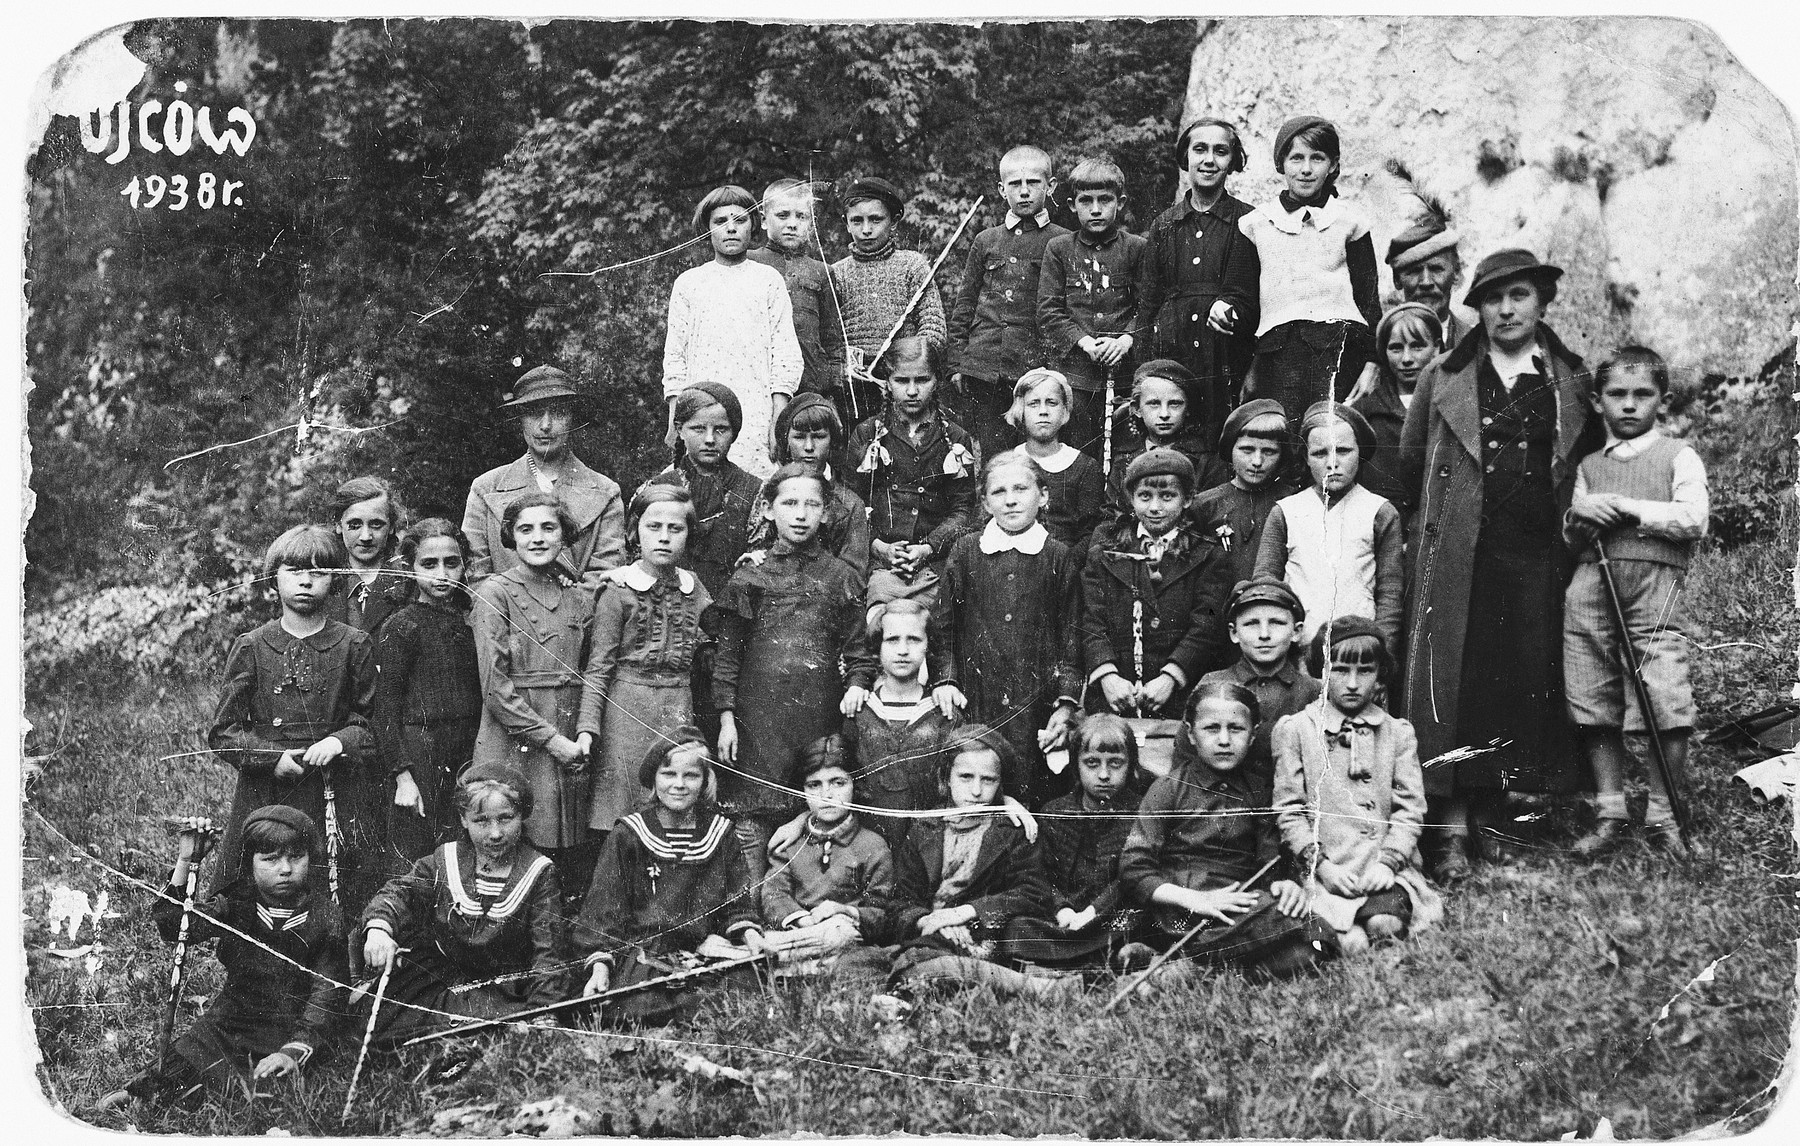 School children from Olkusz go on a class trip to Ojcow.  Among those pictured is Hela Kolin, standing fourth from the left in the second row.  There were three other Jewish girls in the class.